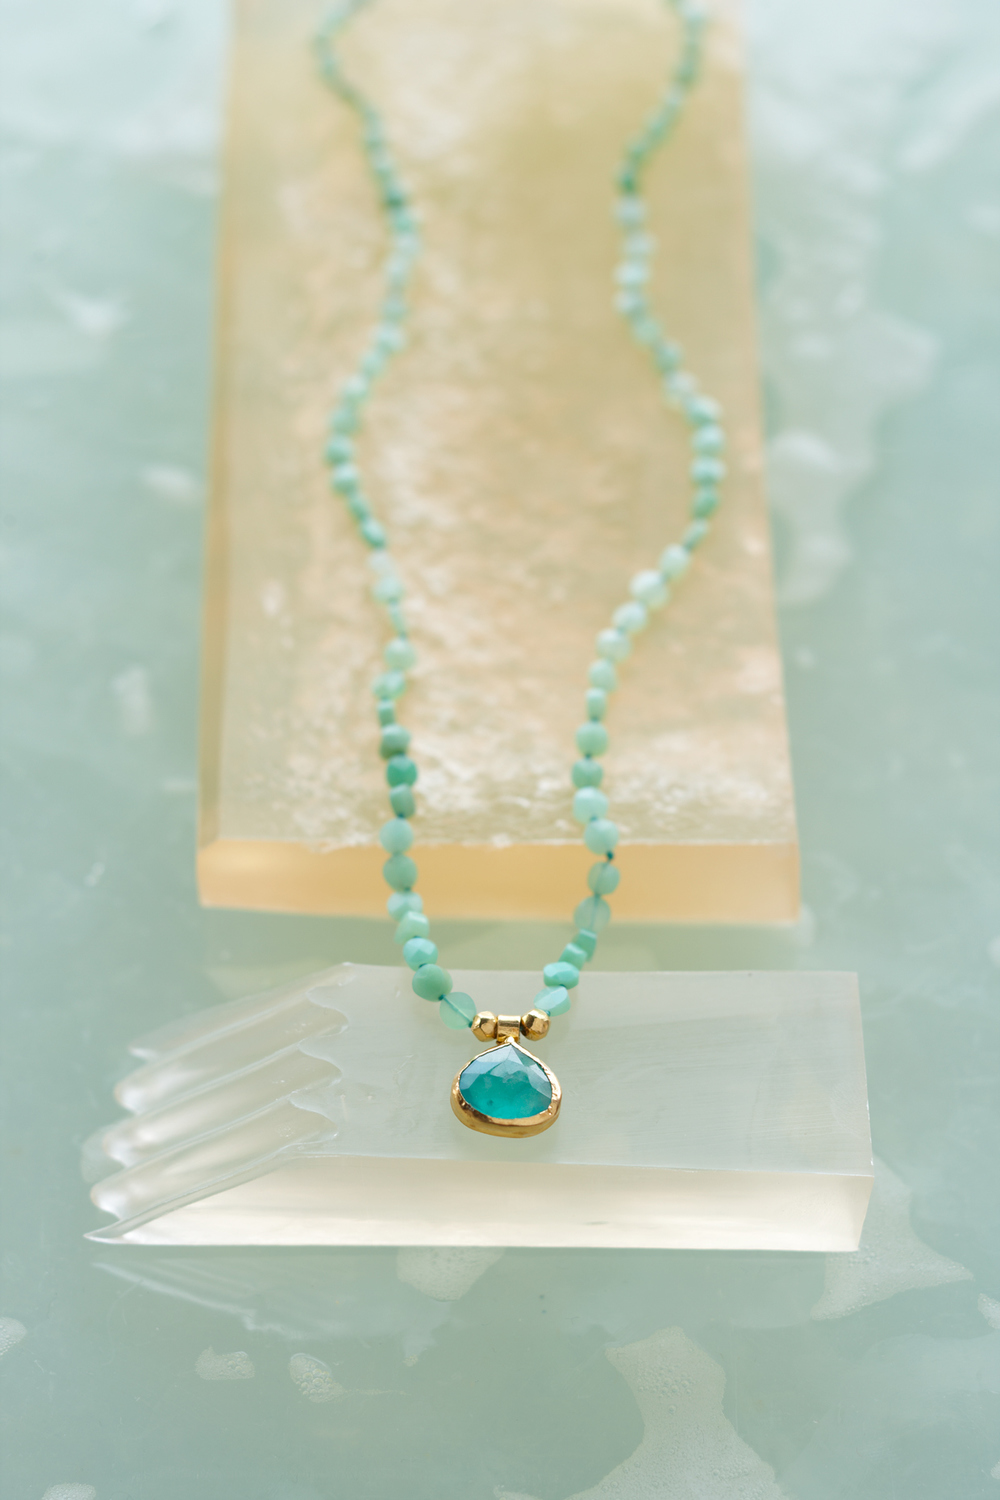 Product photography Jewelry Derek Israelsen Turquoise Necklace